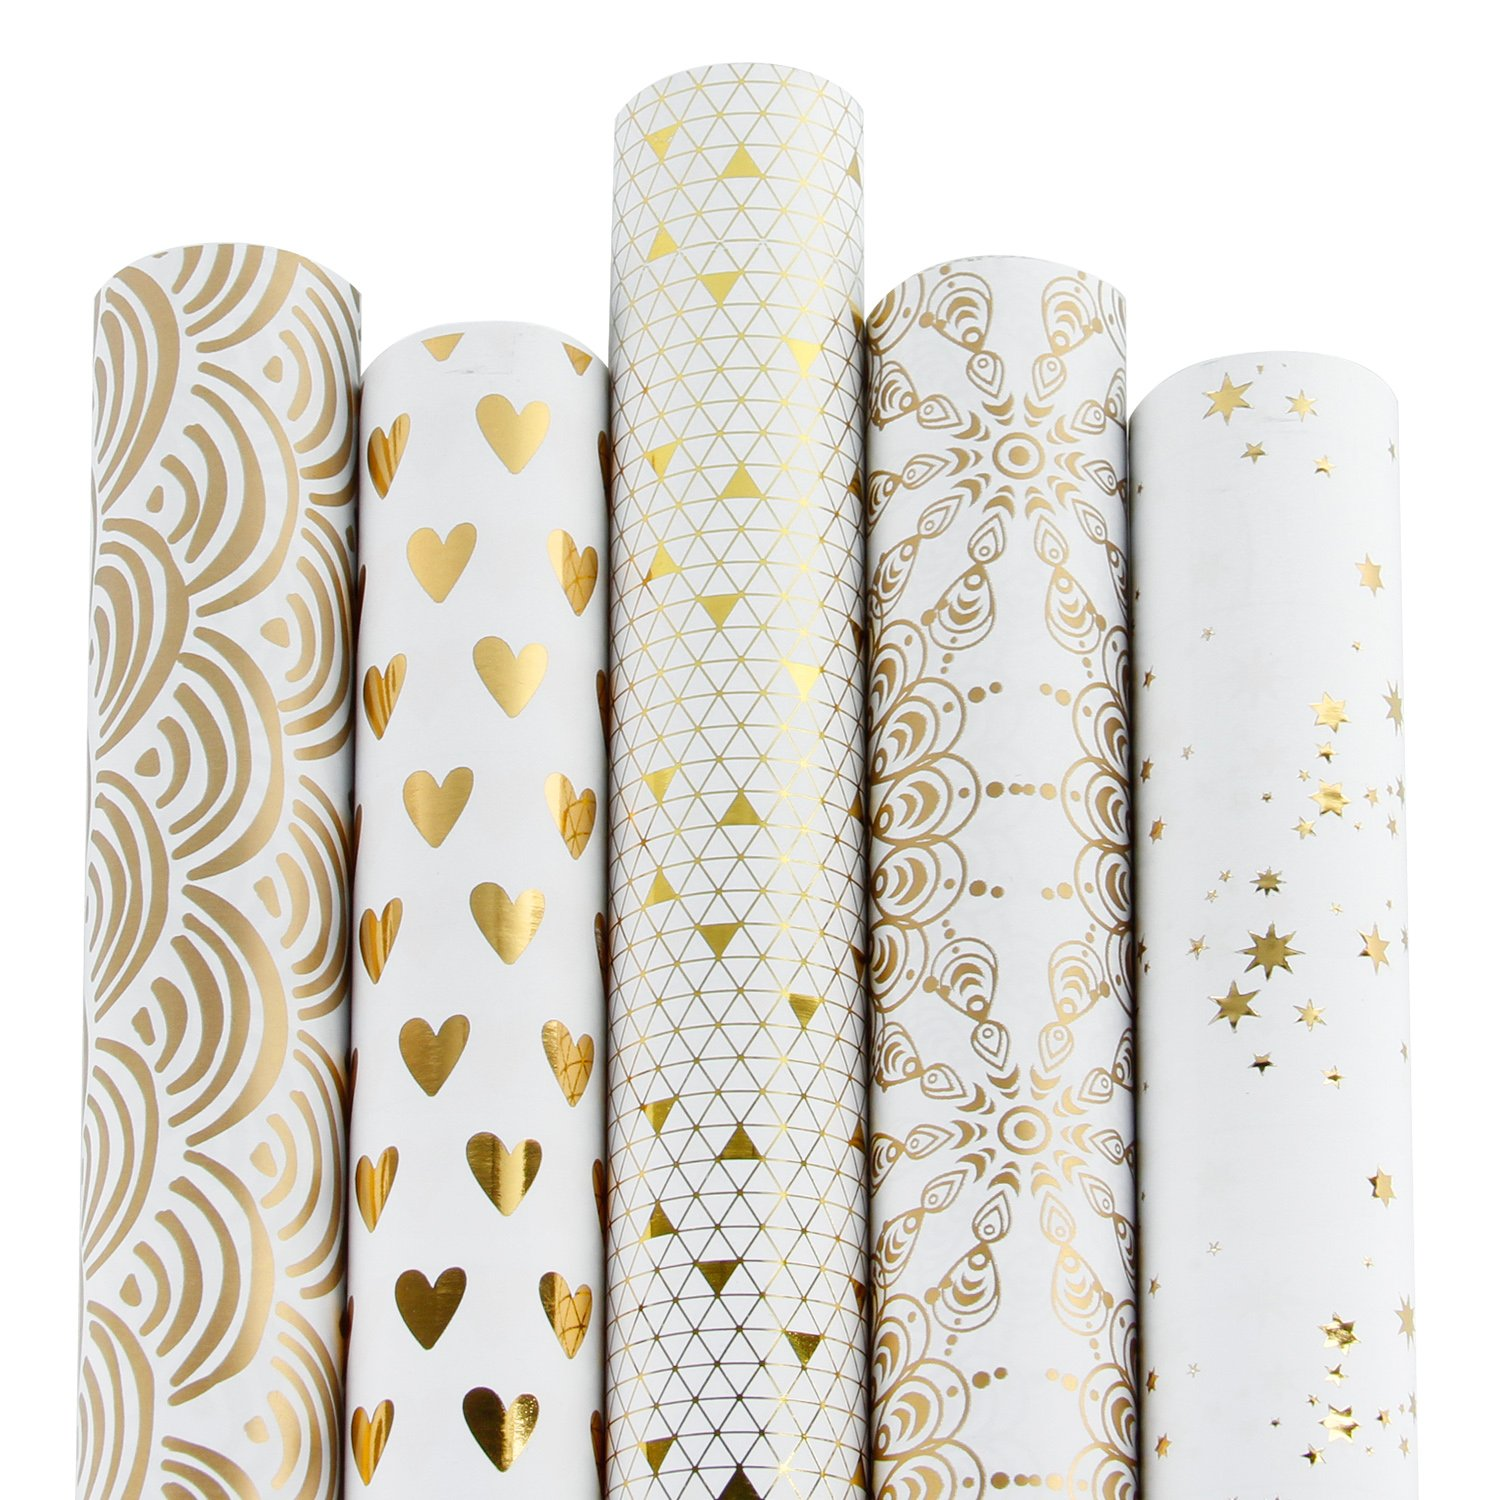 d4a51770eb8 RUSPEPA Gift Wrapping Paper Roll-White and Gold Foil Pattern for  Wedding,Birthdays, Valentines, Christmas-5 Roll-30Inch X 10Feet Per Roll